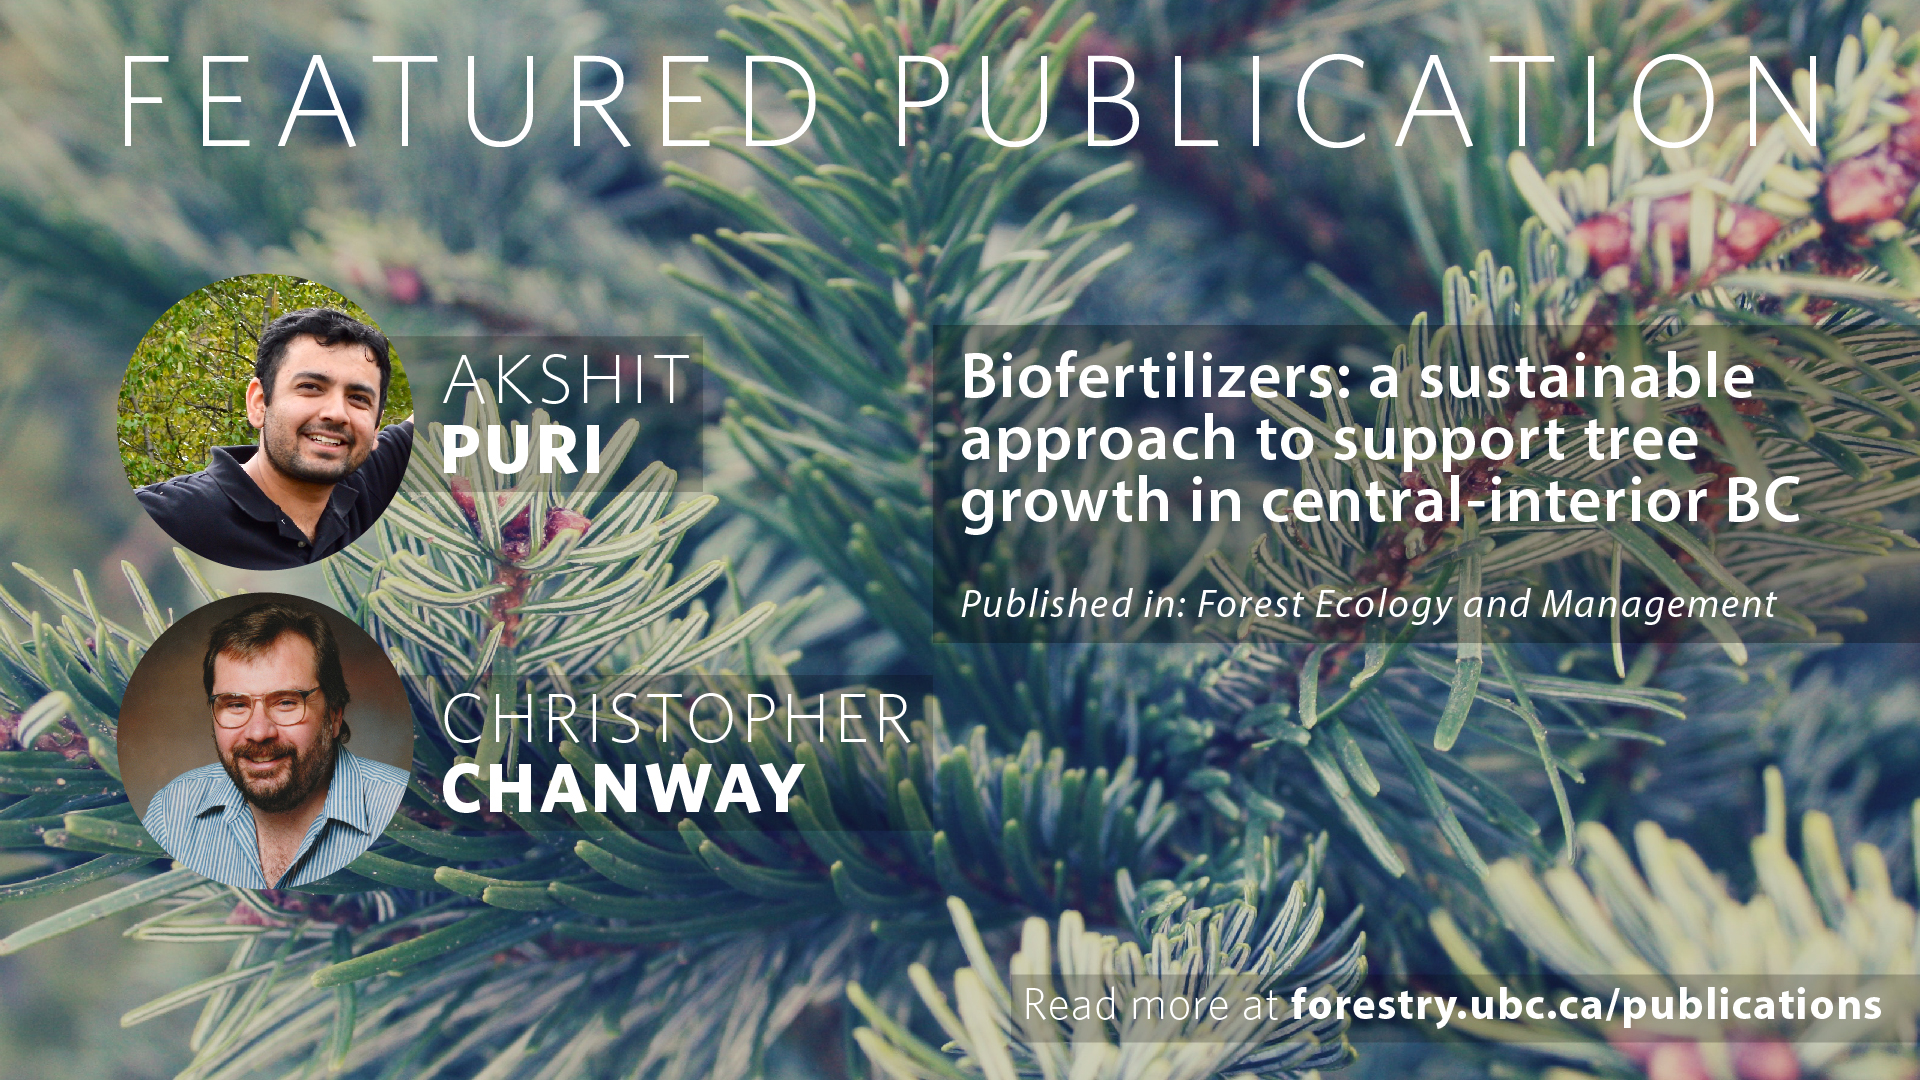 Biofertilizers: a sustainable approach to support tree growth in central-interior BC